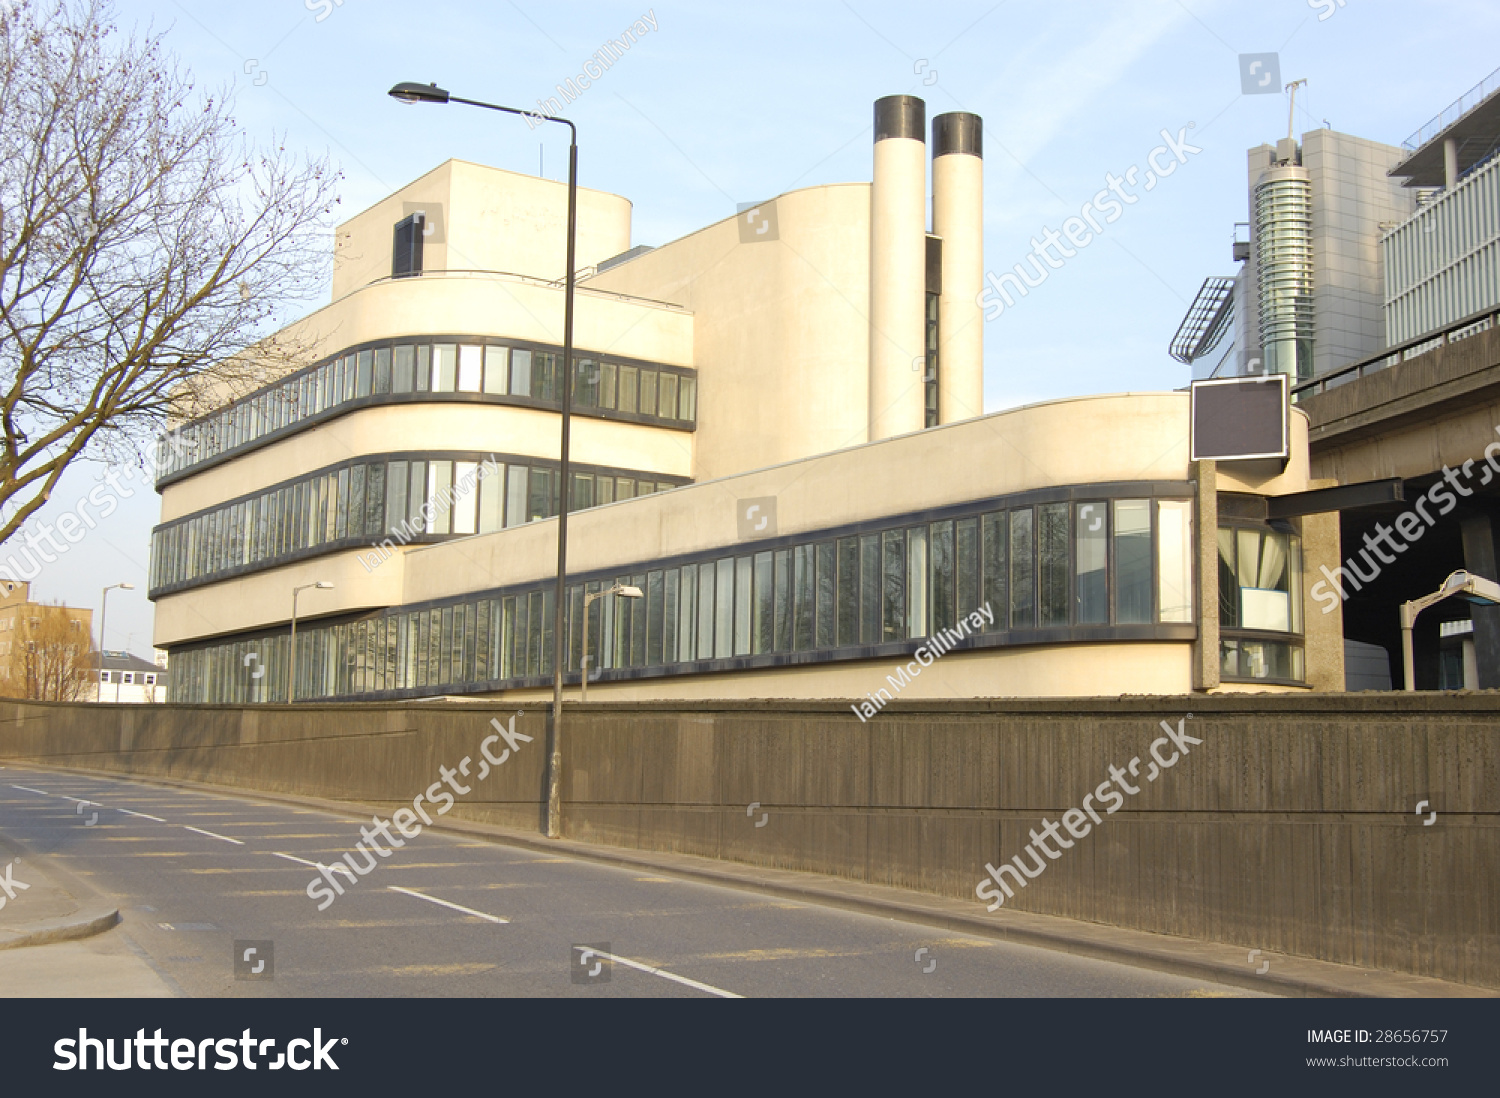 art deco office building in paddington london england preview save to a lightbox art deco office building